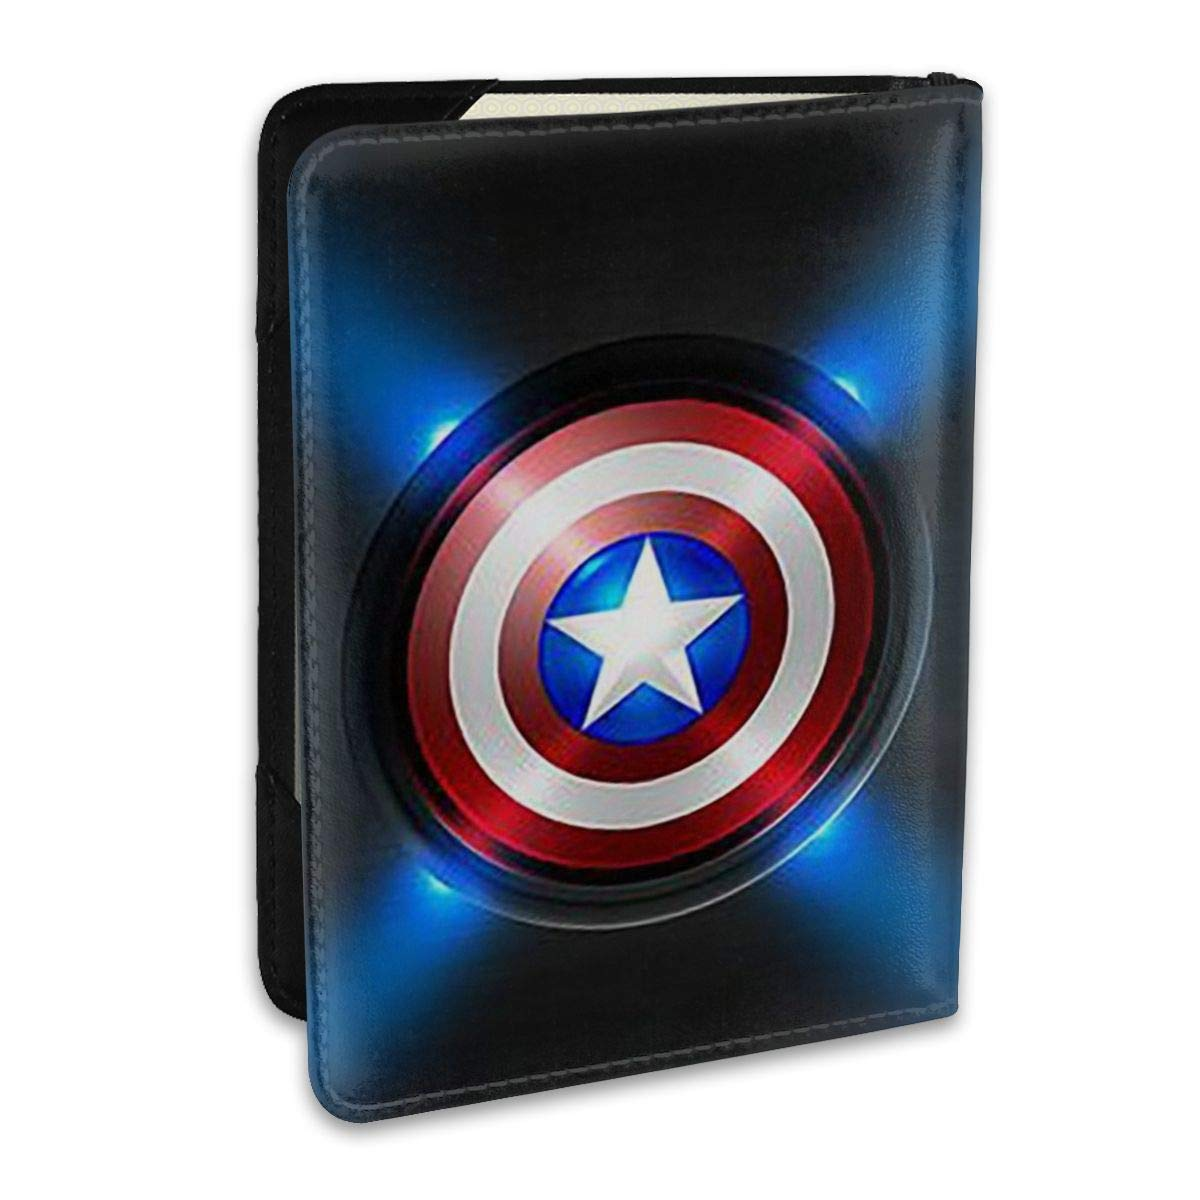 Captain America Travel Passport Cover Case For Men /& Women /â/€ Passport Holder 5.5 Inch /â/€ Get Peace Of Mind When Traveling